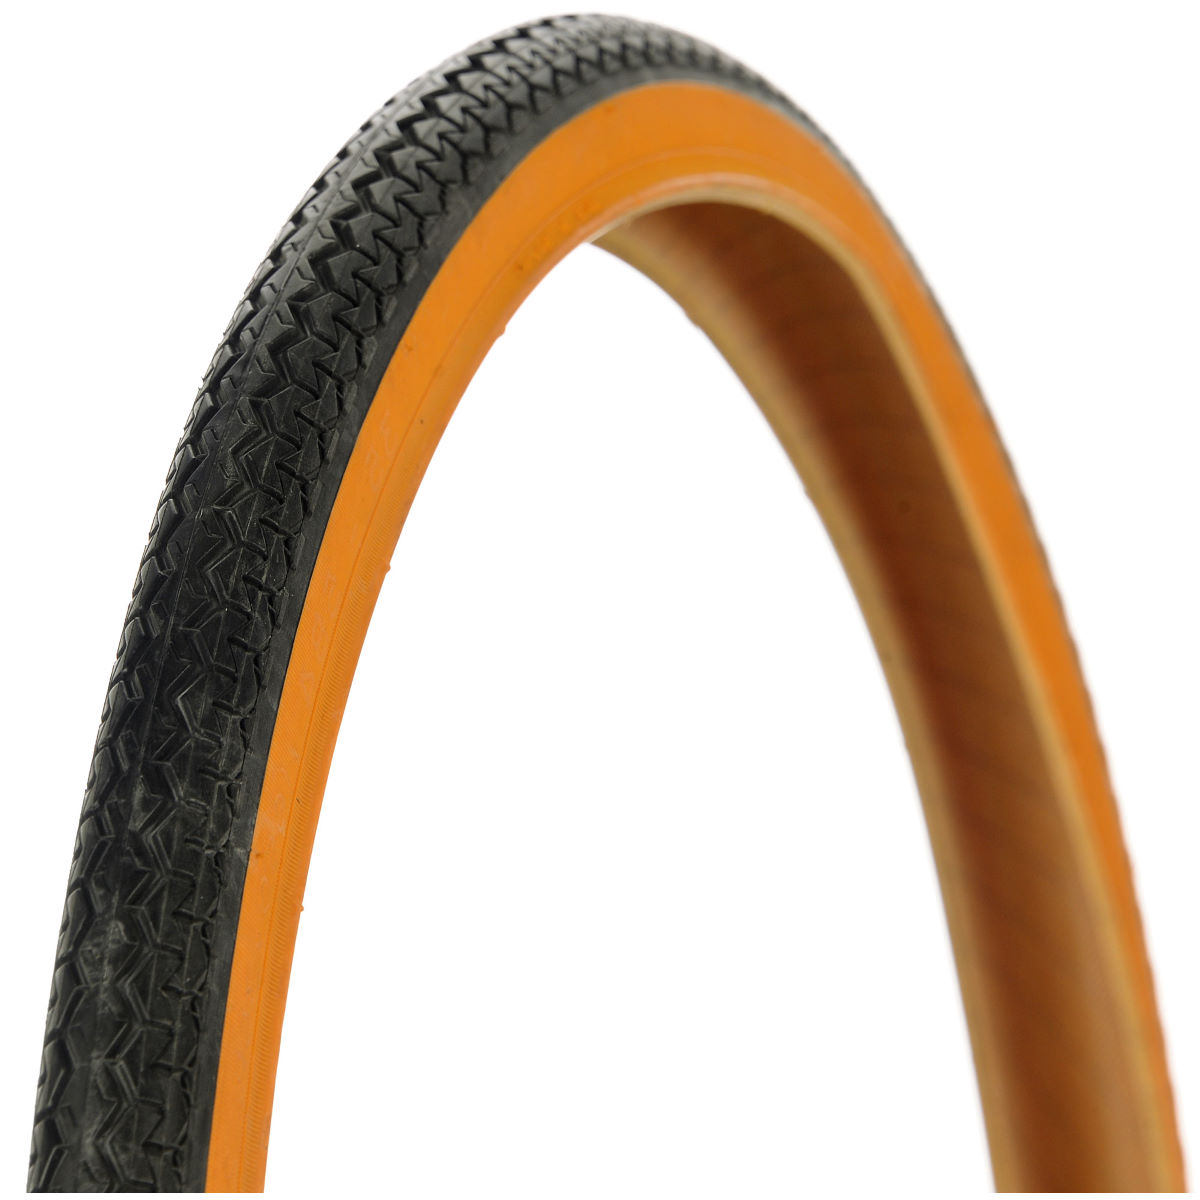 Pneu Michelin World Tour Bike - 700c 35c Wire Bead Pneus ville